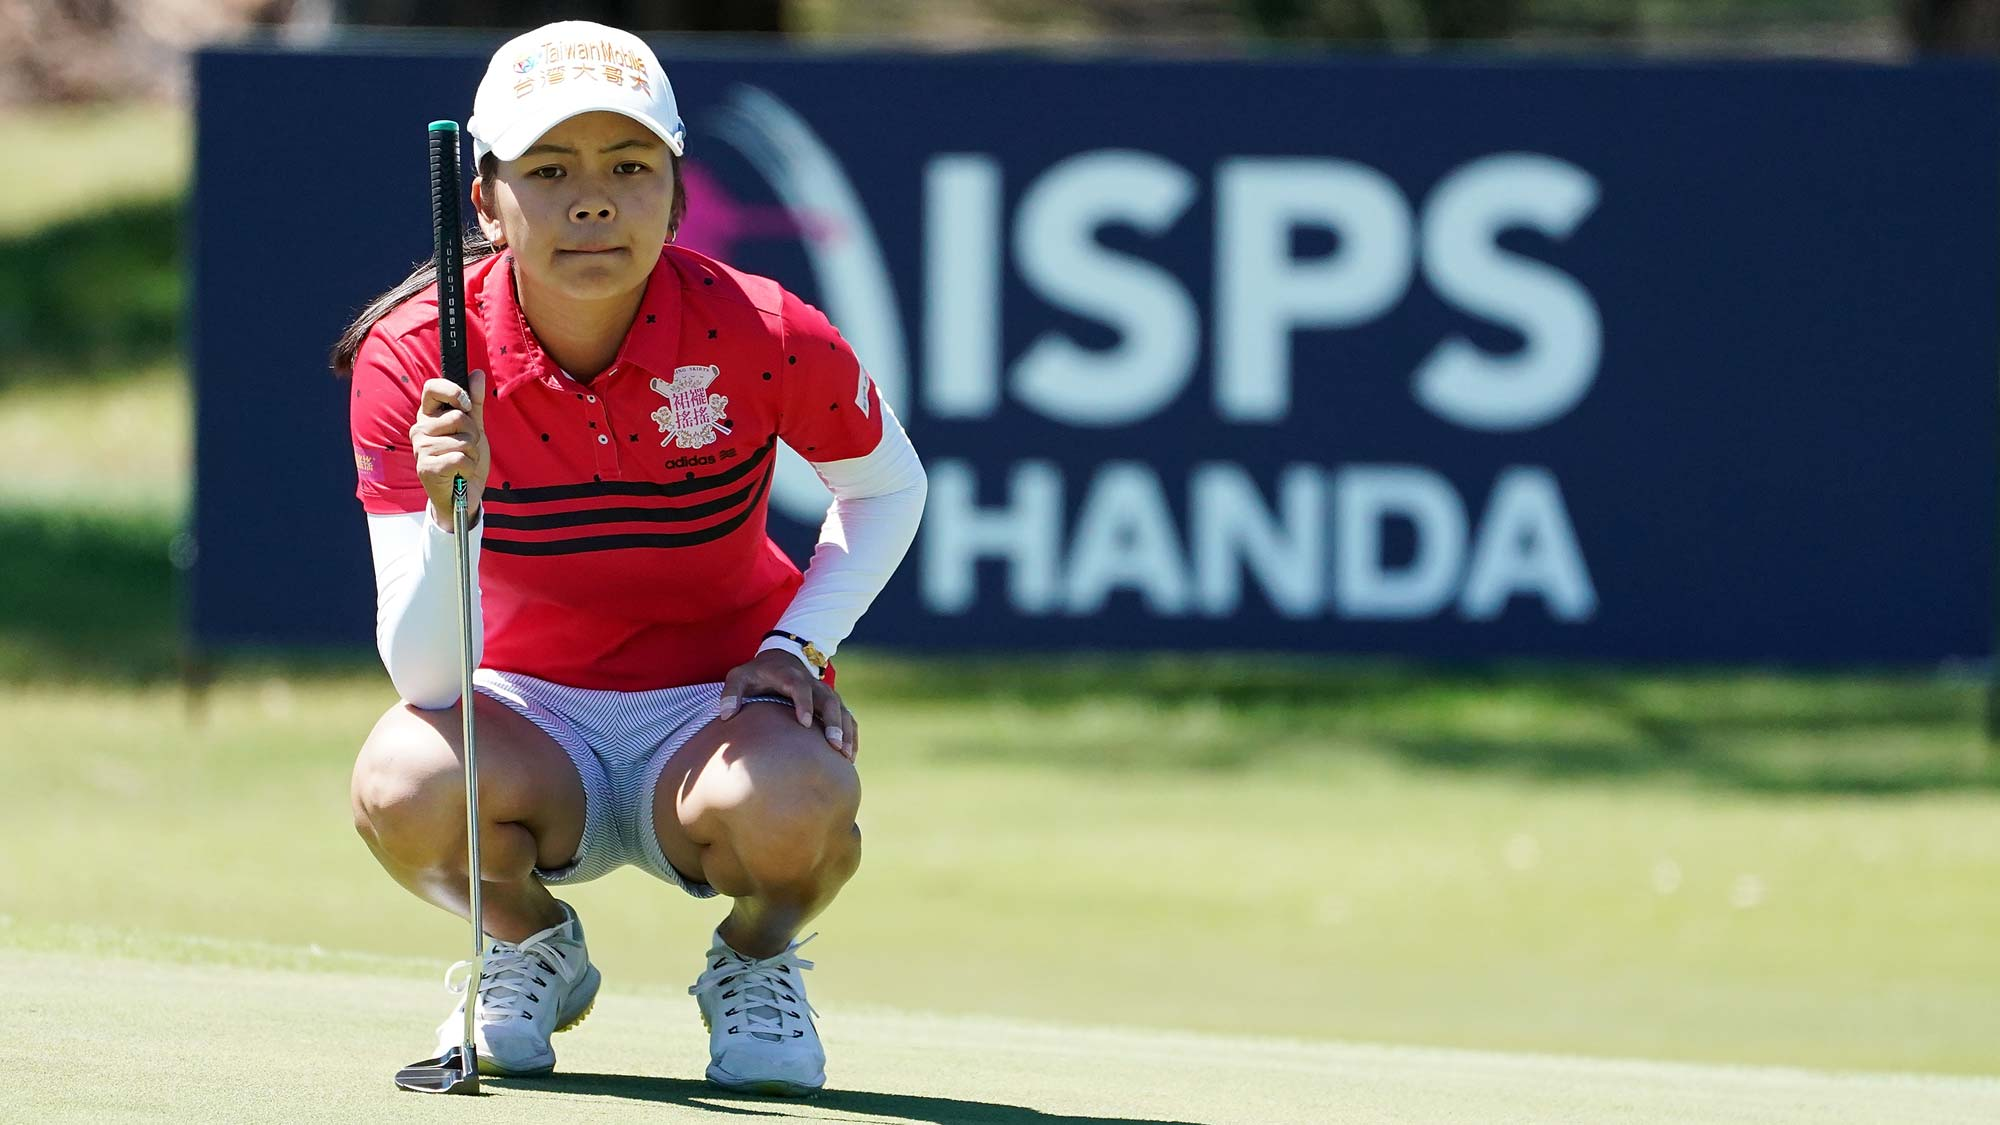 Wei-Ling HSU of Taiwan looks on during day three of the 2019 ISPS Handa Women's Australian Open